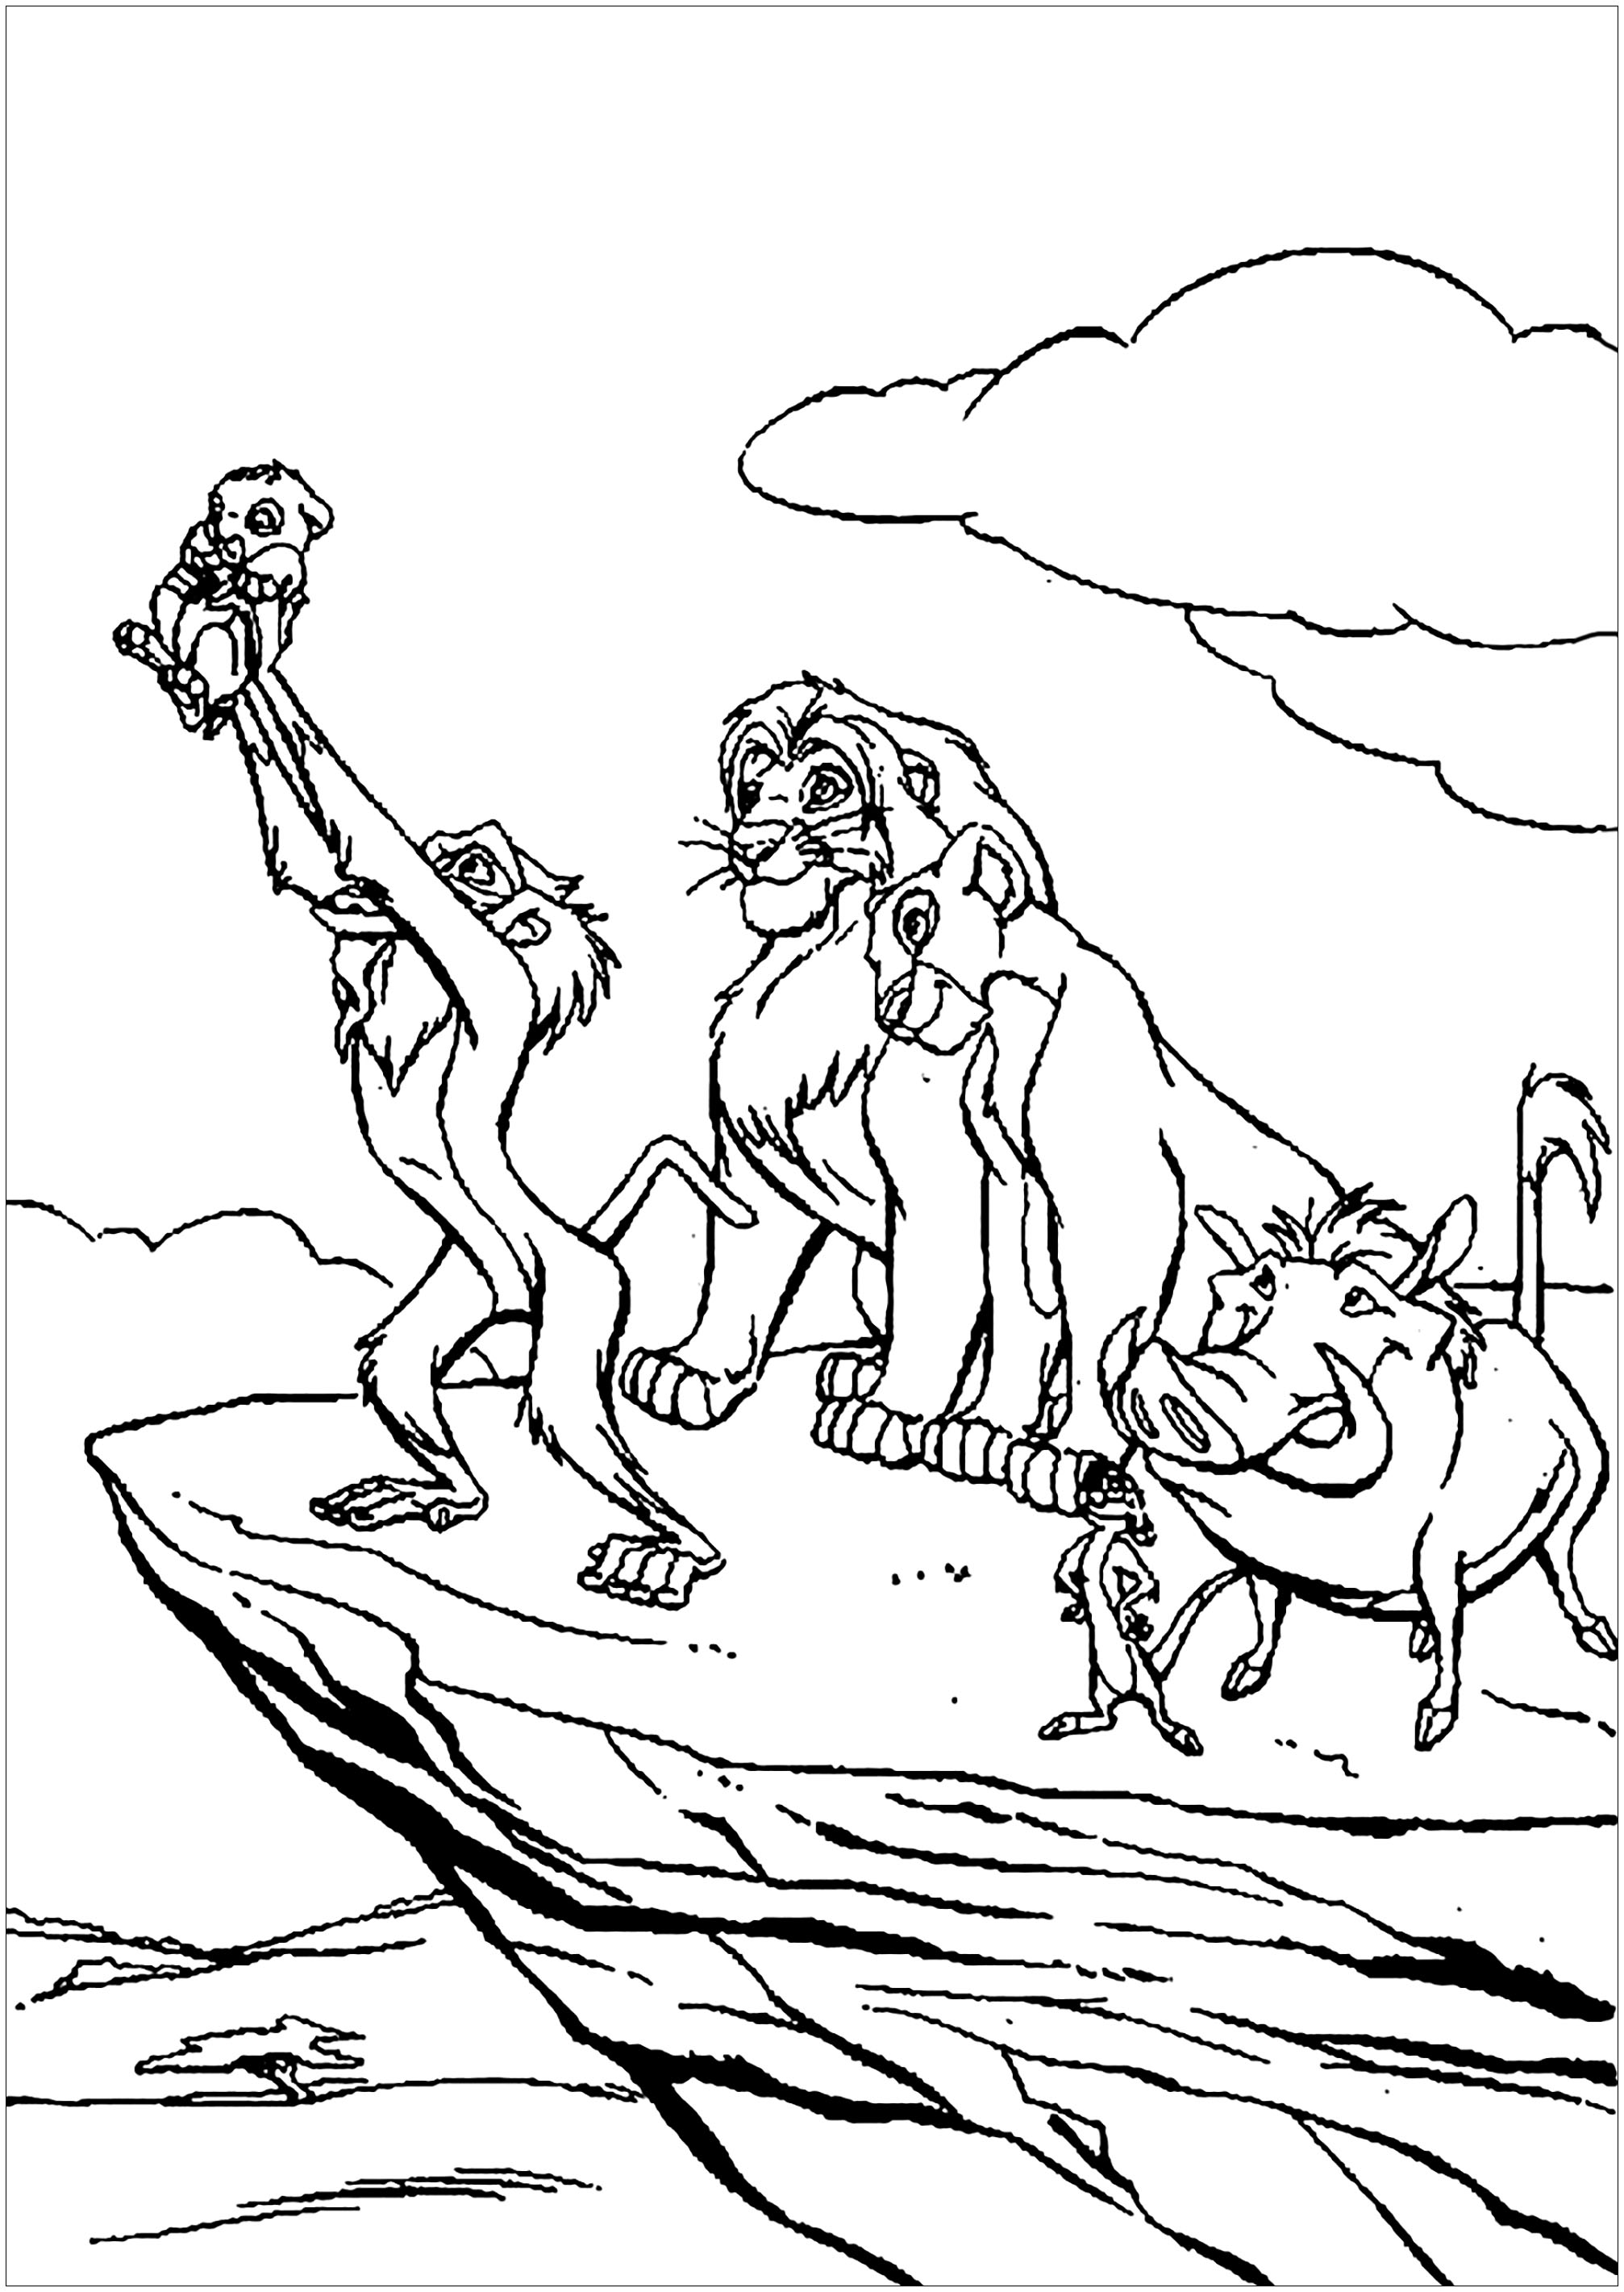 The lion king to print - The Lion King Kids Coloring Pages